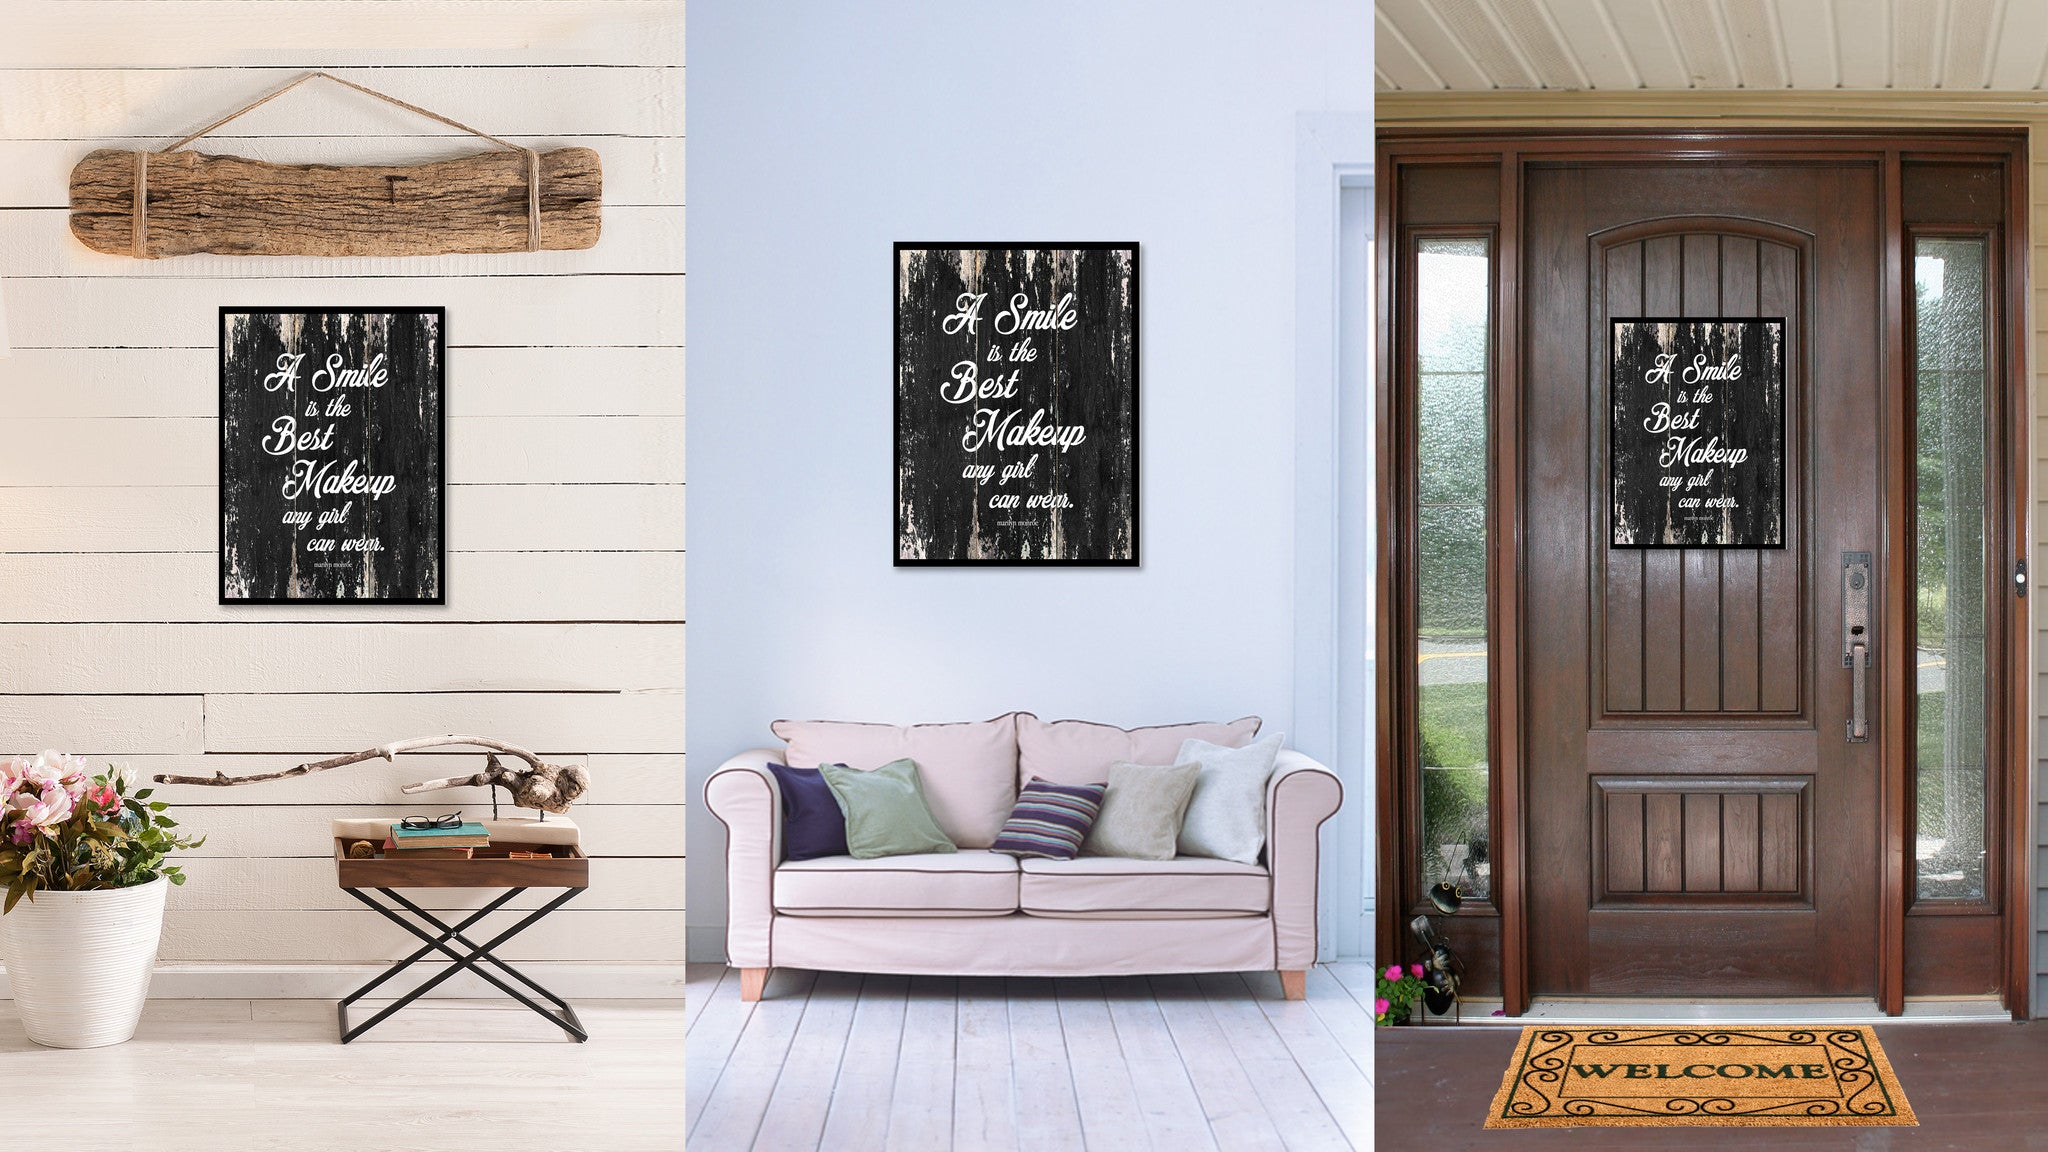 A smile is the best makeup any girl can wear Motivational Quote Saying Canvas Print with Picture Frame Home Decor Wall Art